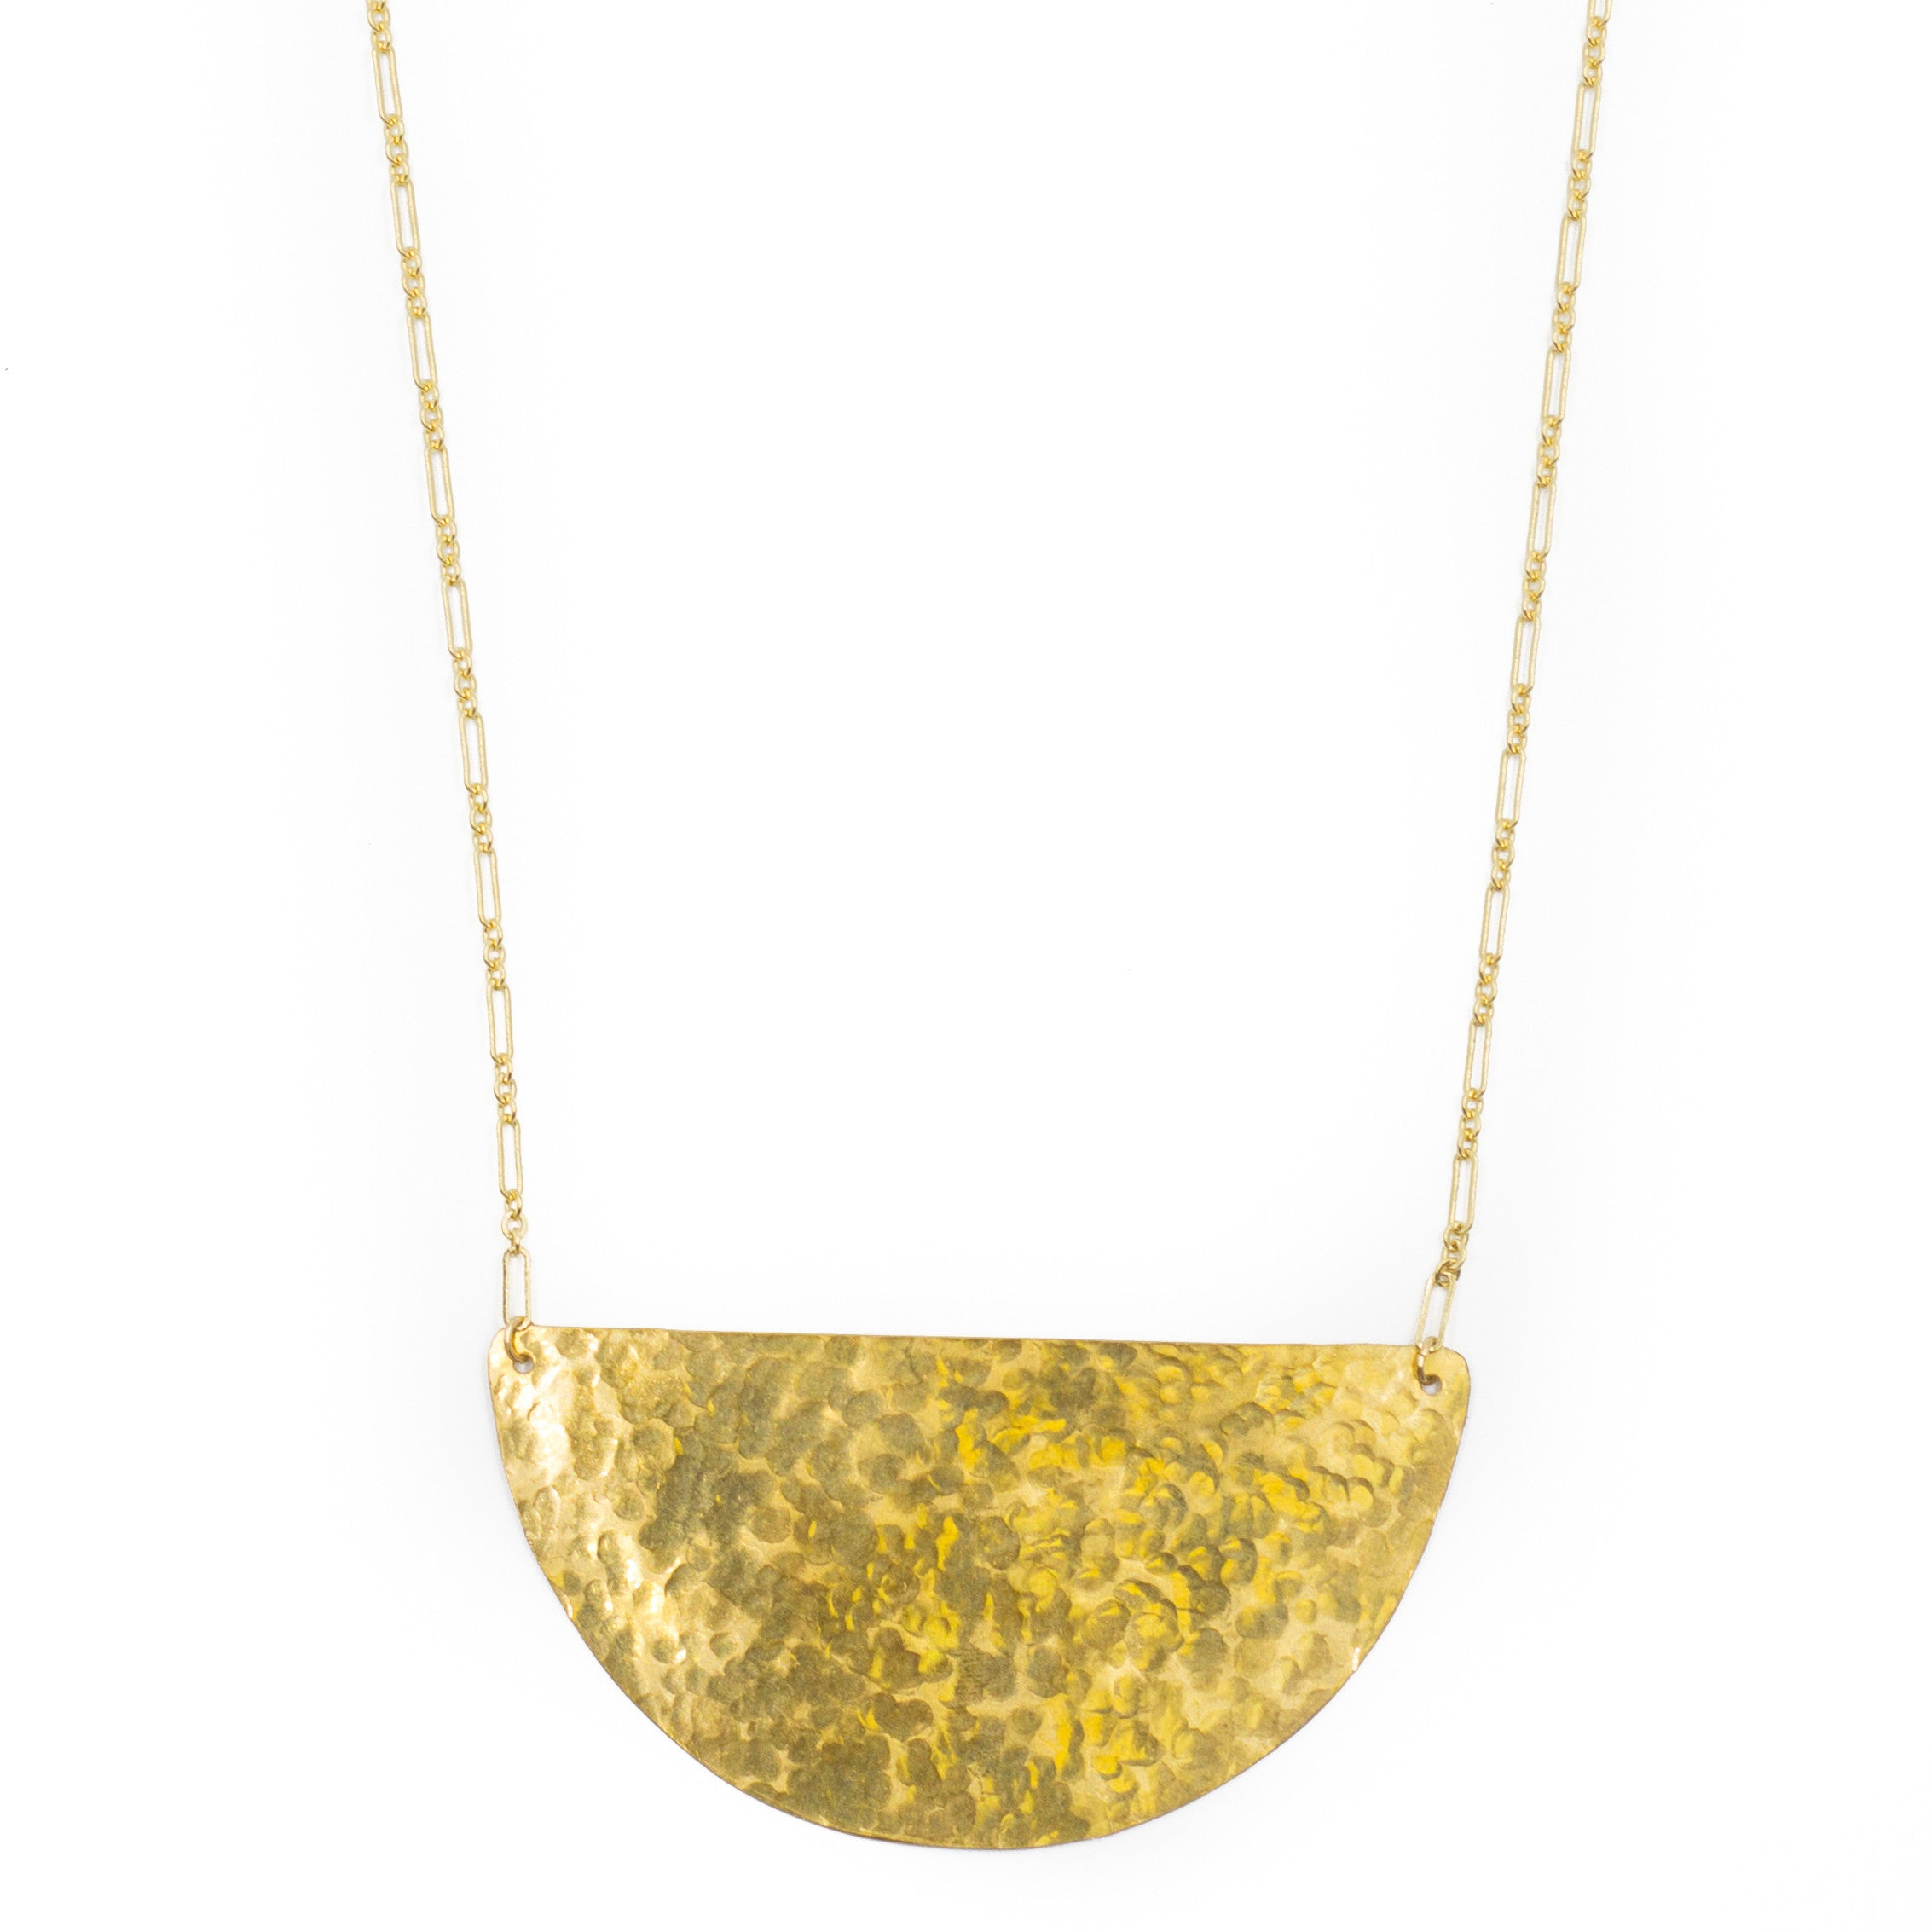 hommage wille a product claude moon necklace frey pendant half freywille monet